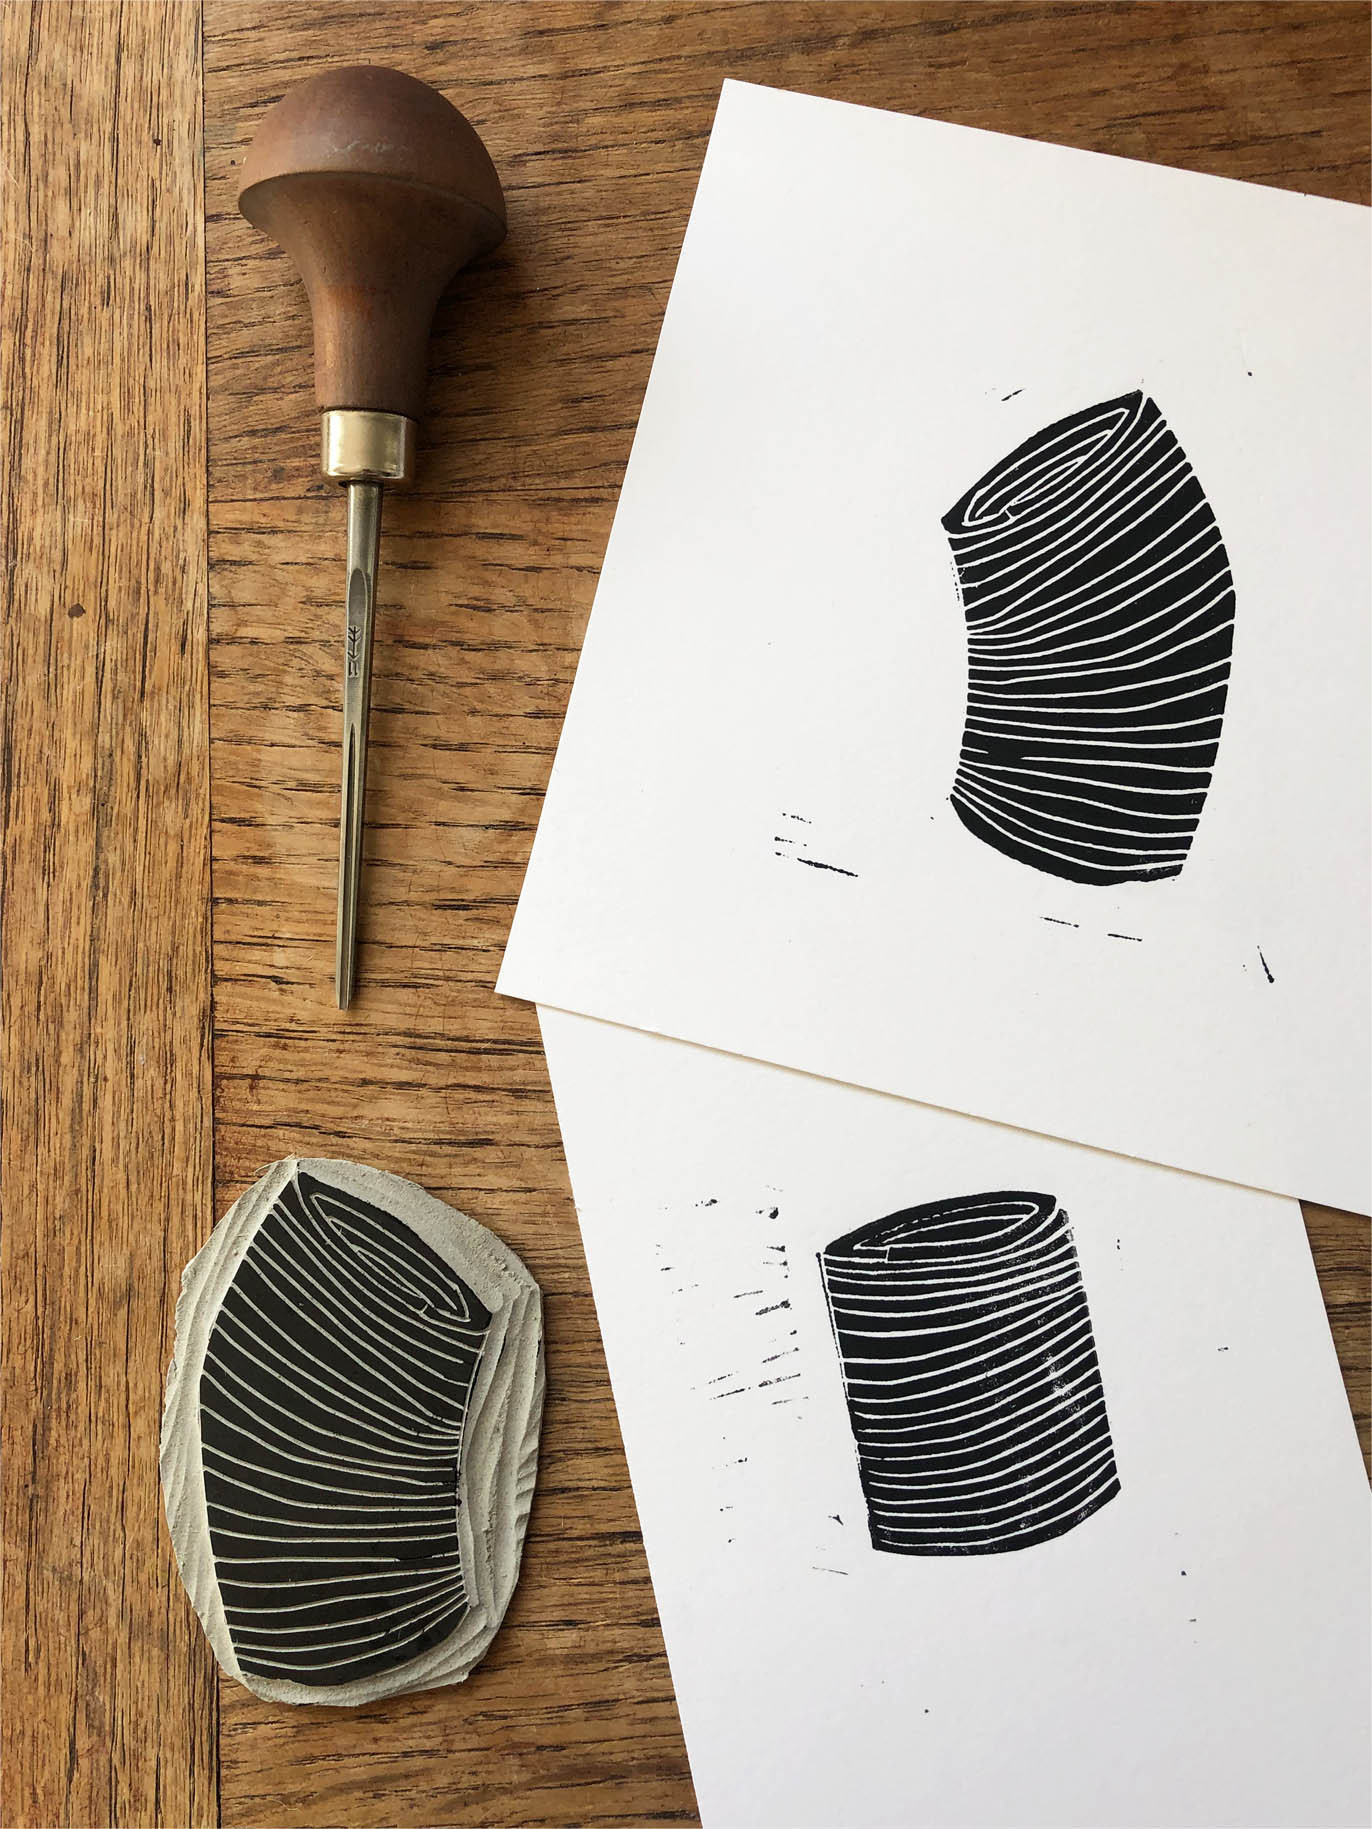 Slinky Prints & Carving